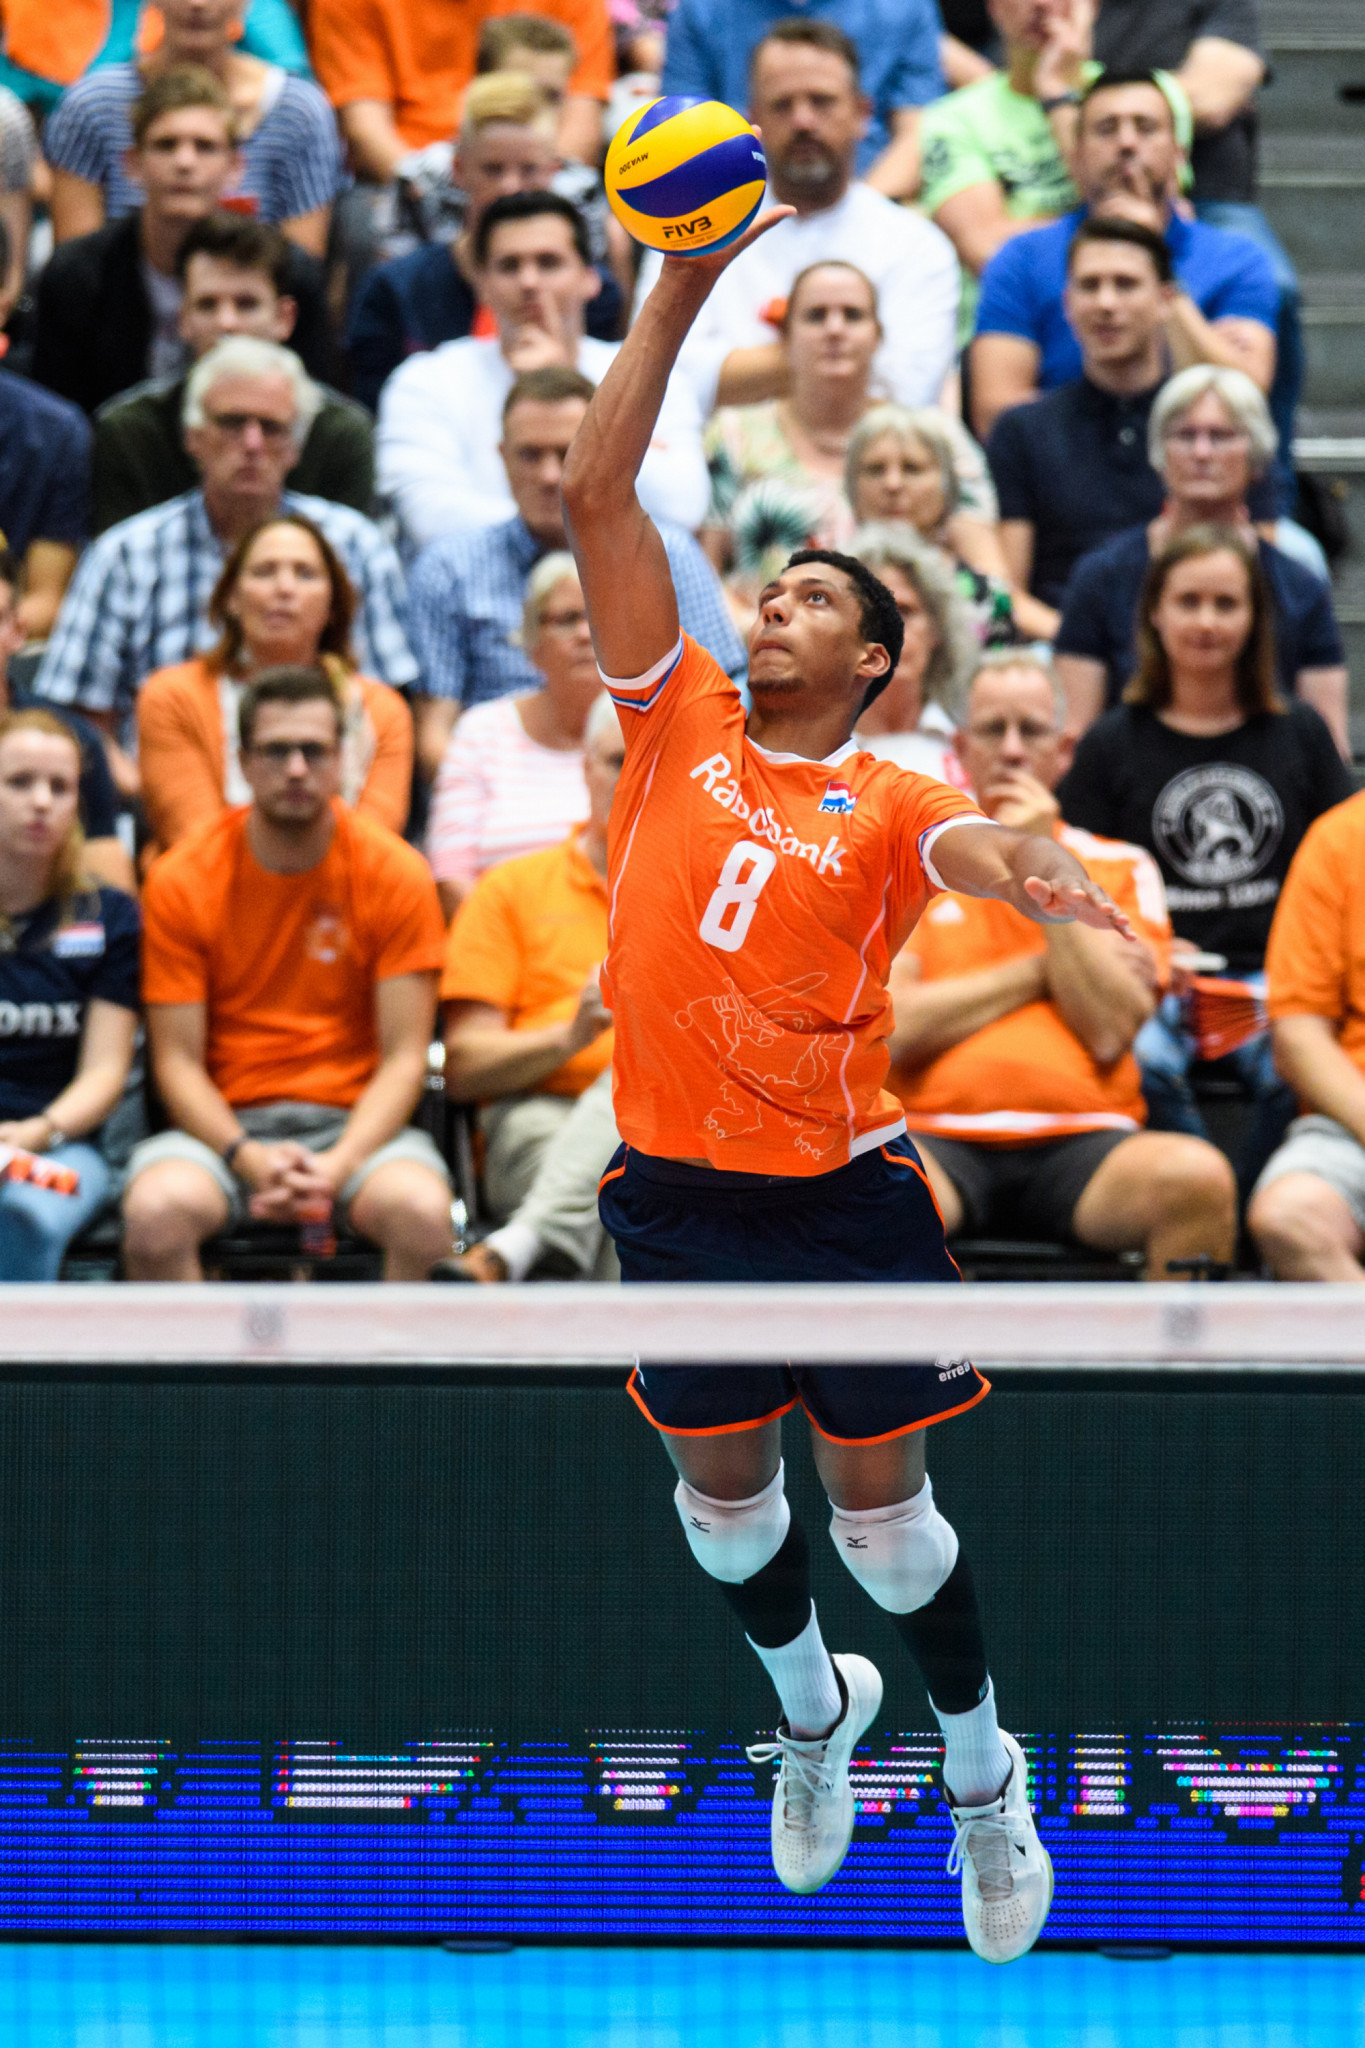 At Rotterdam Ahoy, hosts The Netherlands defeated Belgium to secure a second successive Pool B victory ©FIVB